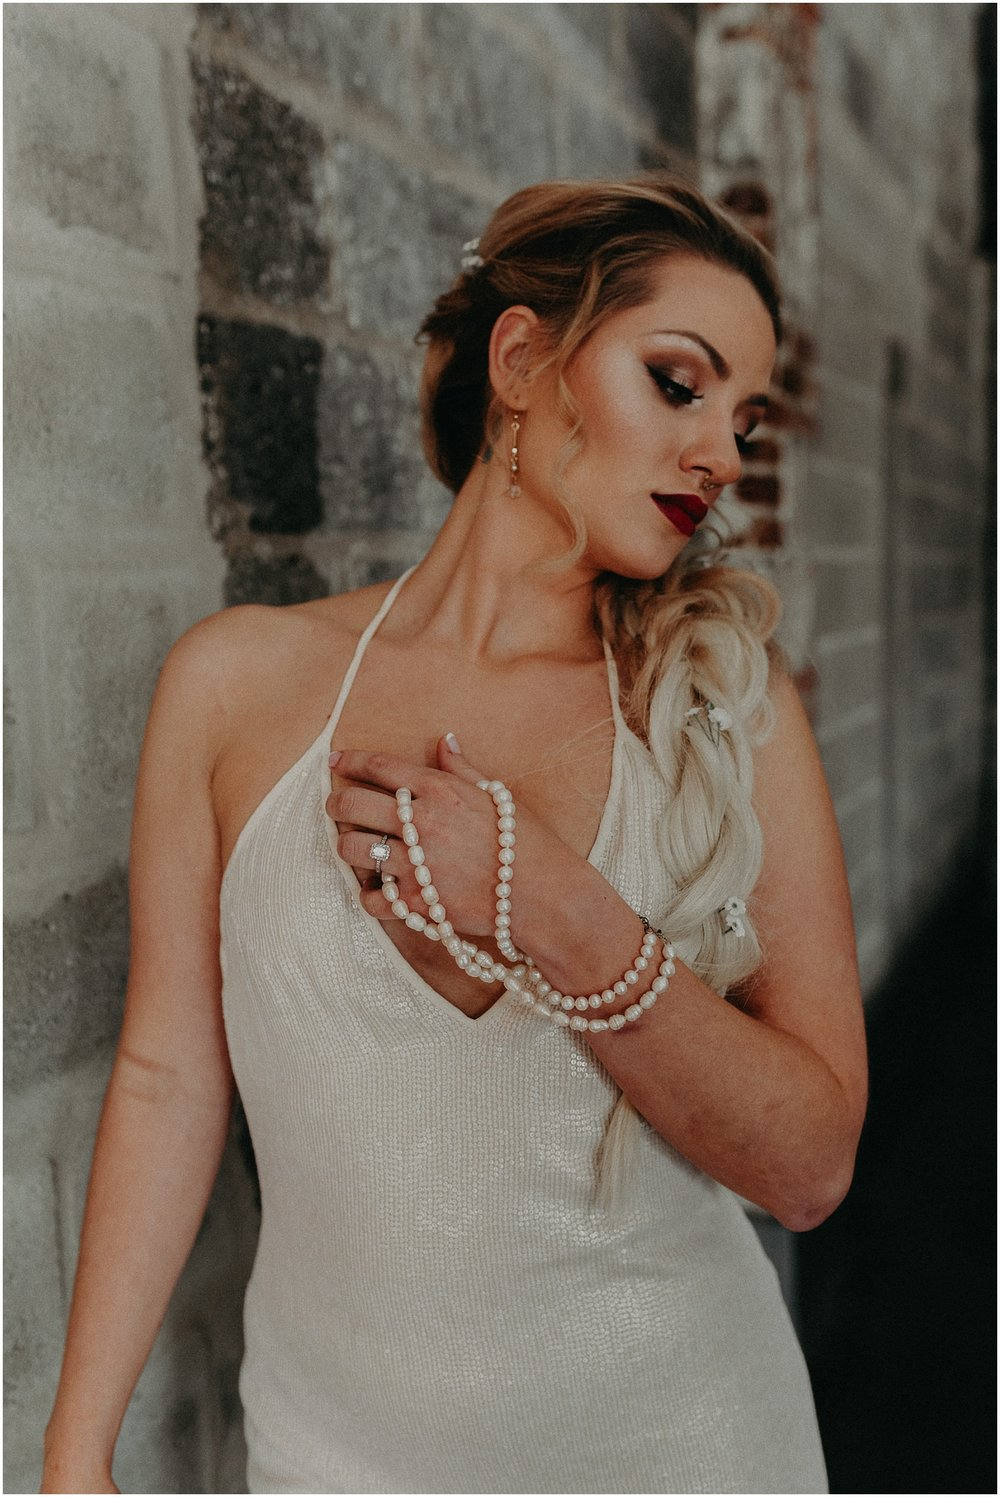 styled shoot-bridal portraits-portraits-bride-rock and roll-industrial-urban-wedding-inspiration-nj-new jersey-nyc-new york city-art-diy wedding_0055.jpg